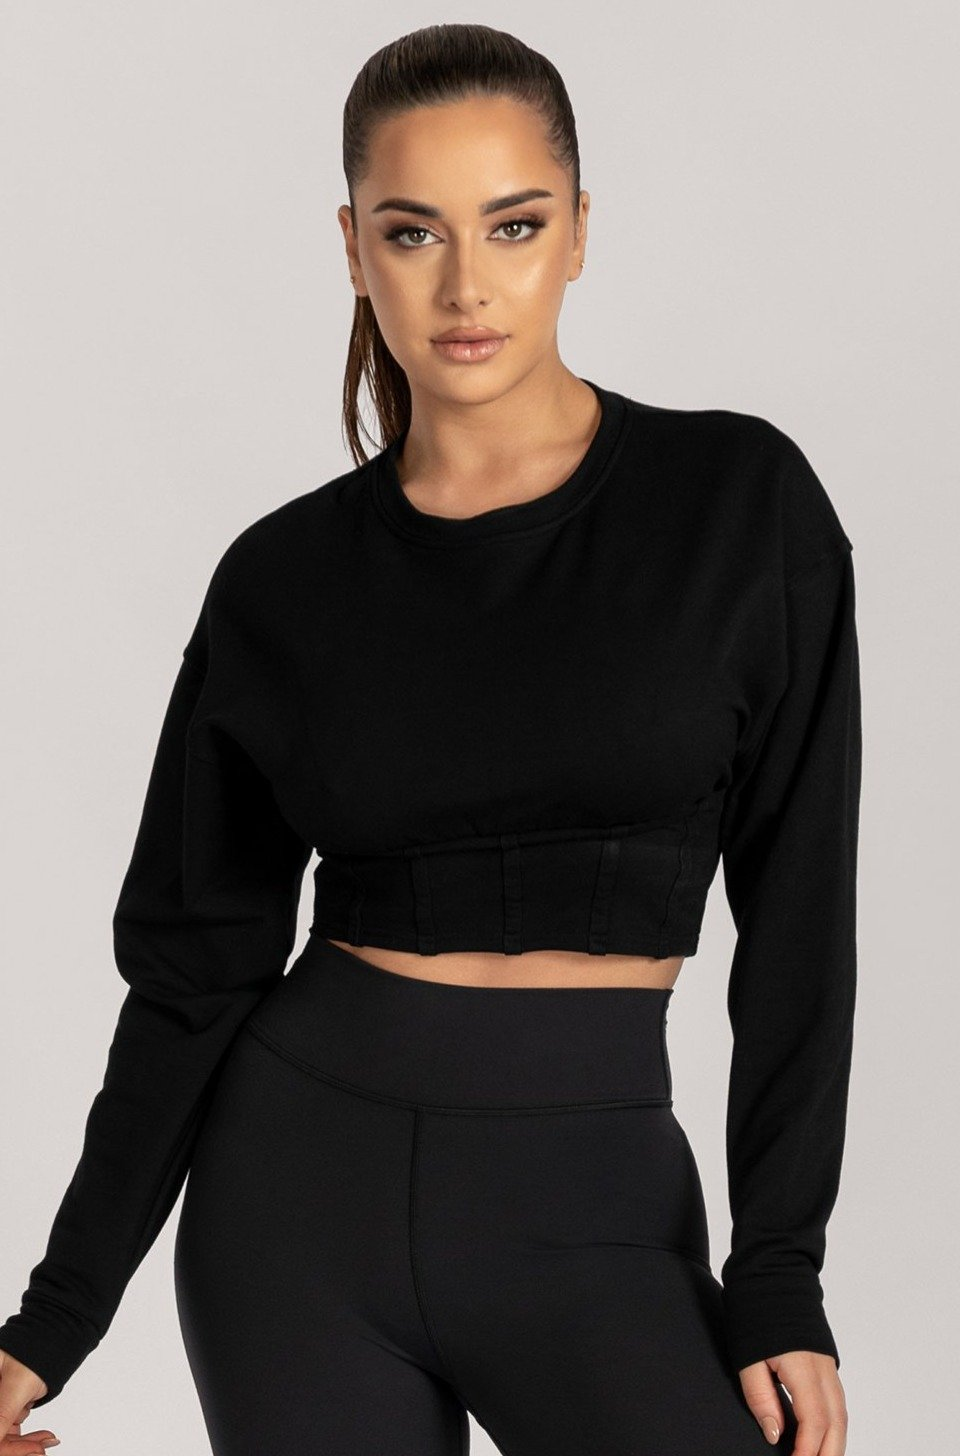 Hestia Panelled Cropped Jumper - Black - MESHKI ?id=16083065077835